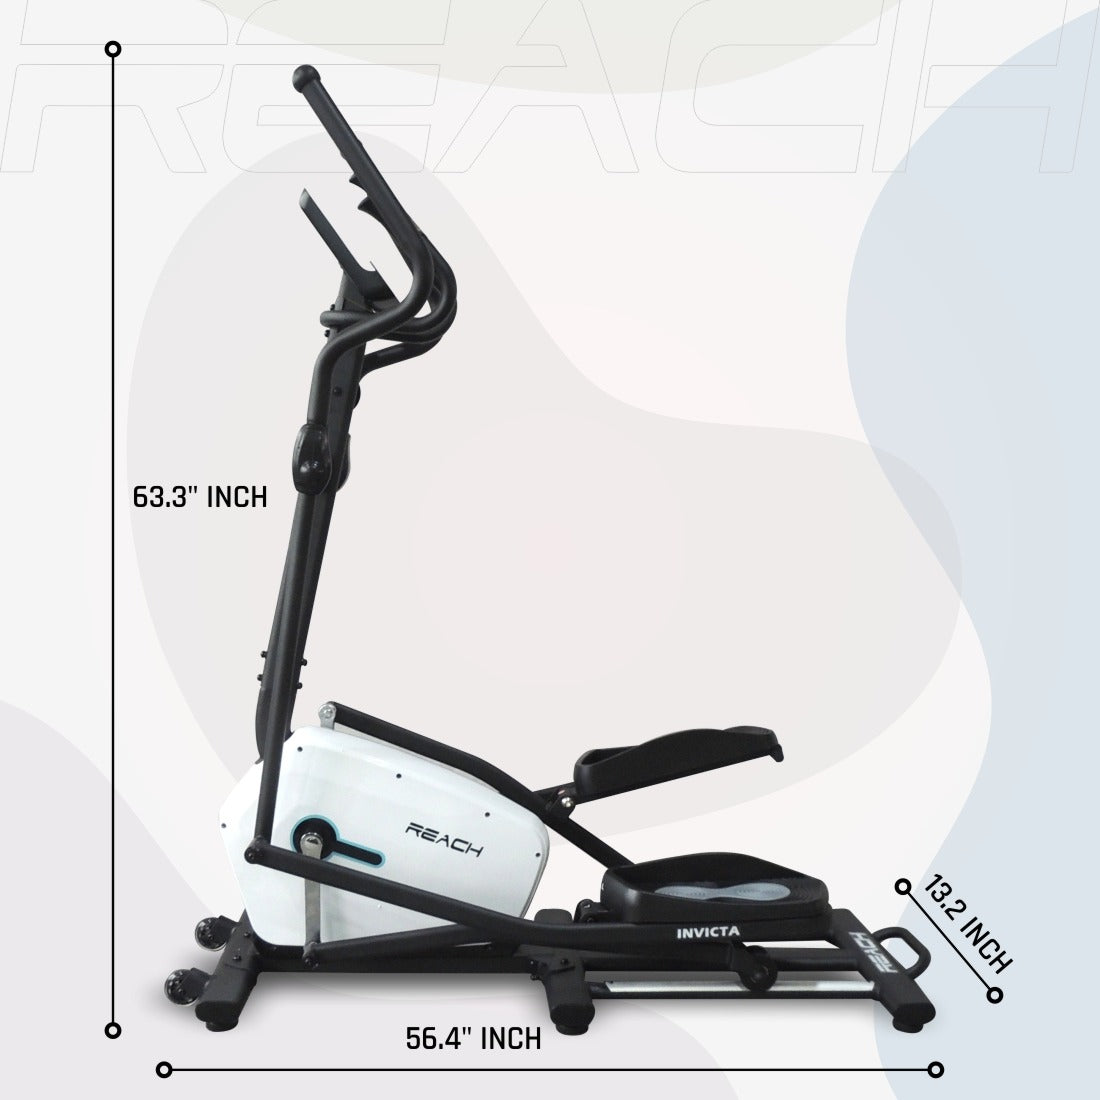 Reach Invicta Elliptical